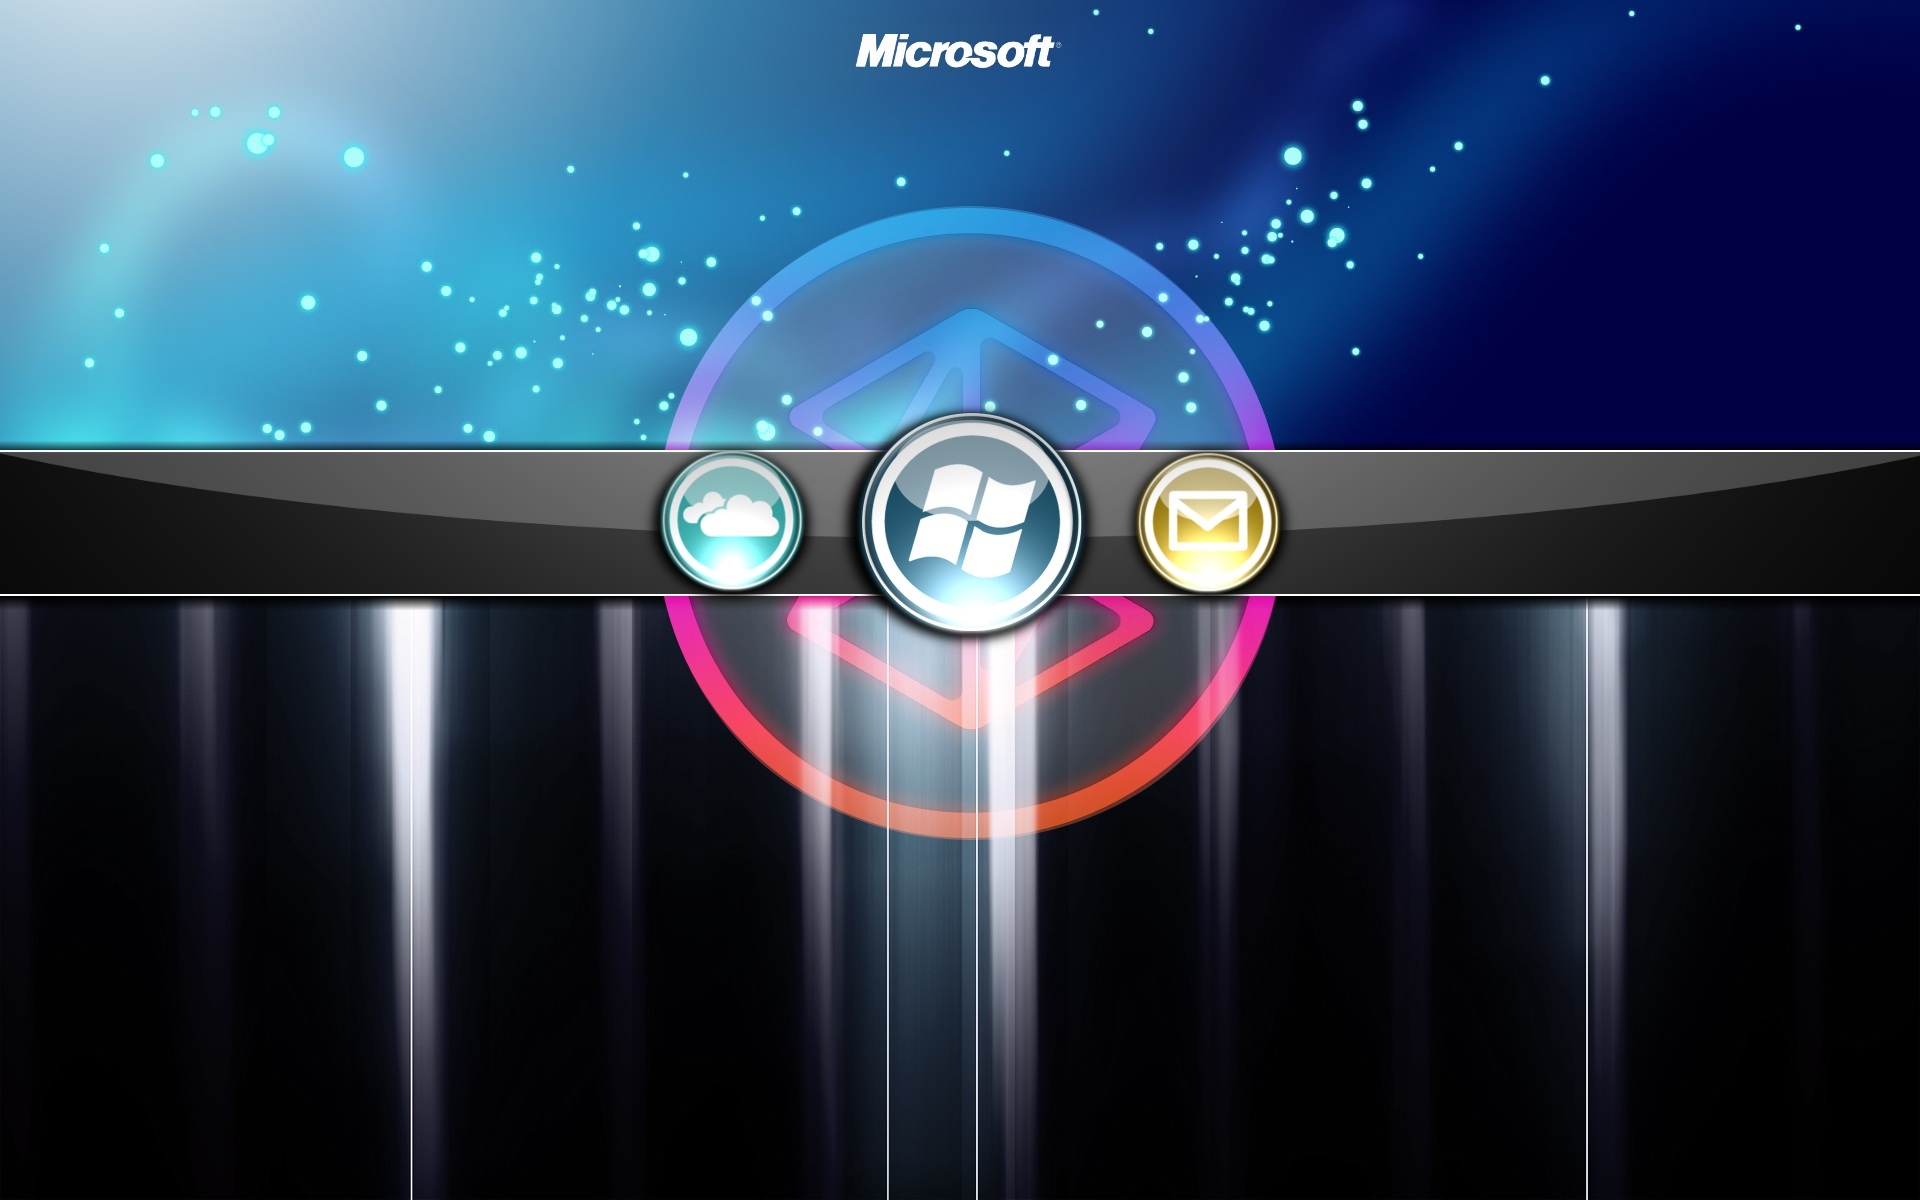 Image Windows 8 Zune Wallpapers And Stock Photos